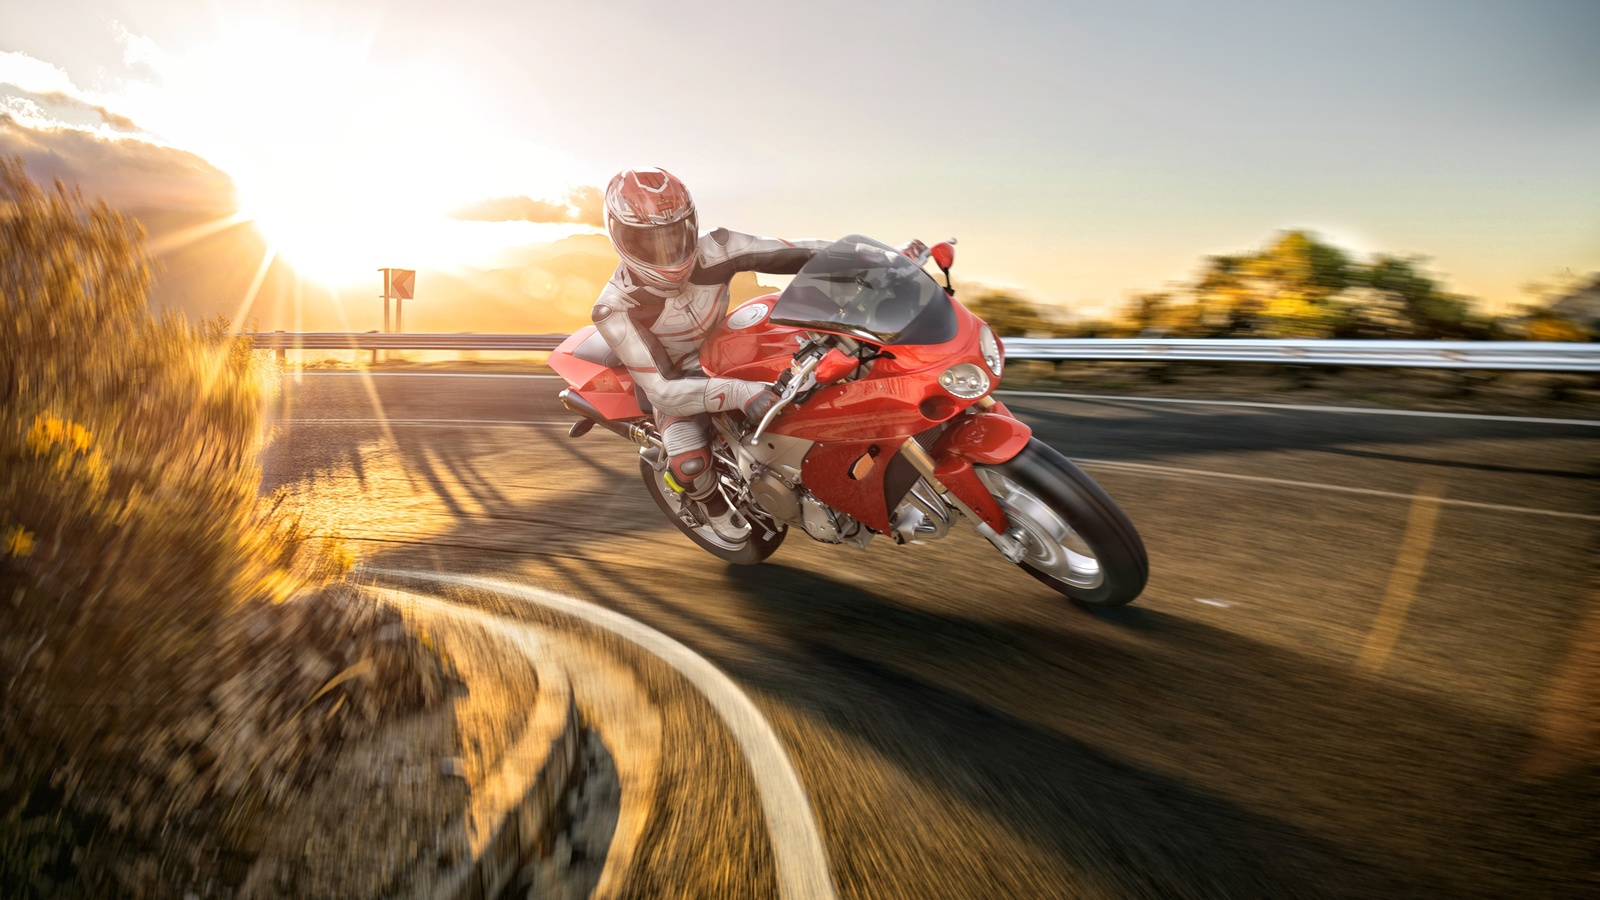 bosch's two-wheeler business grows faster than the market - bosch